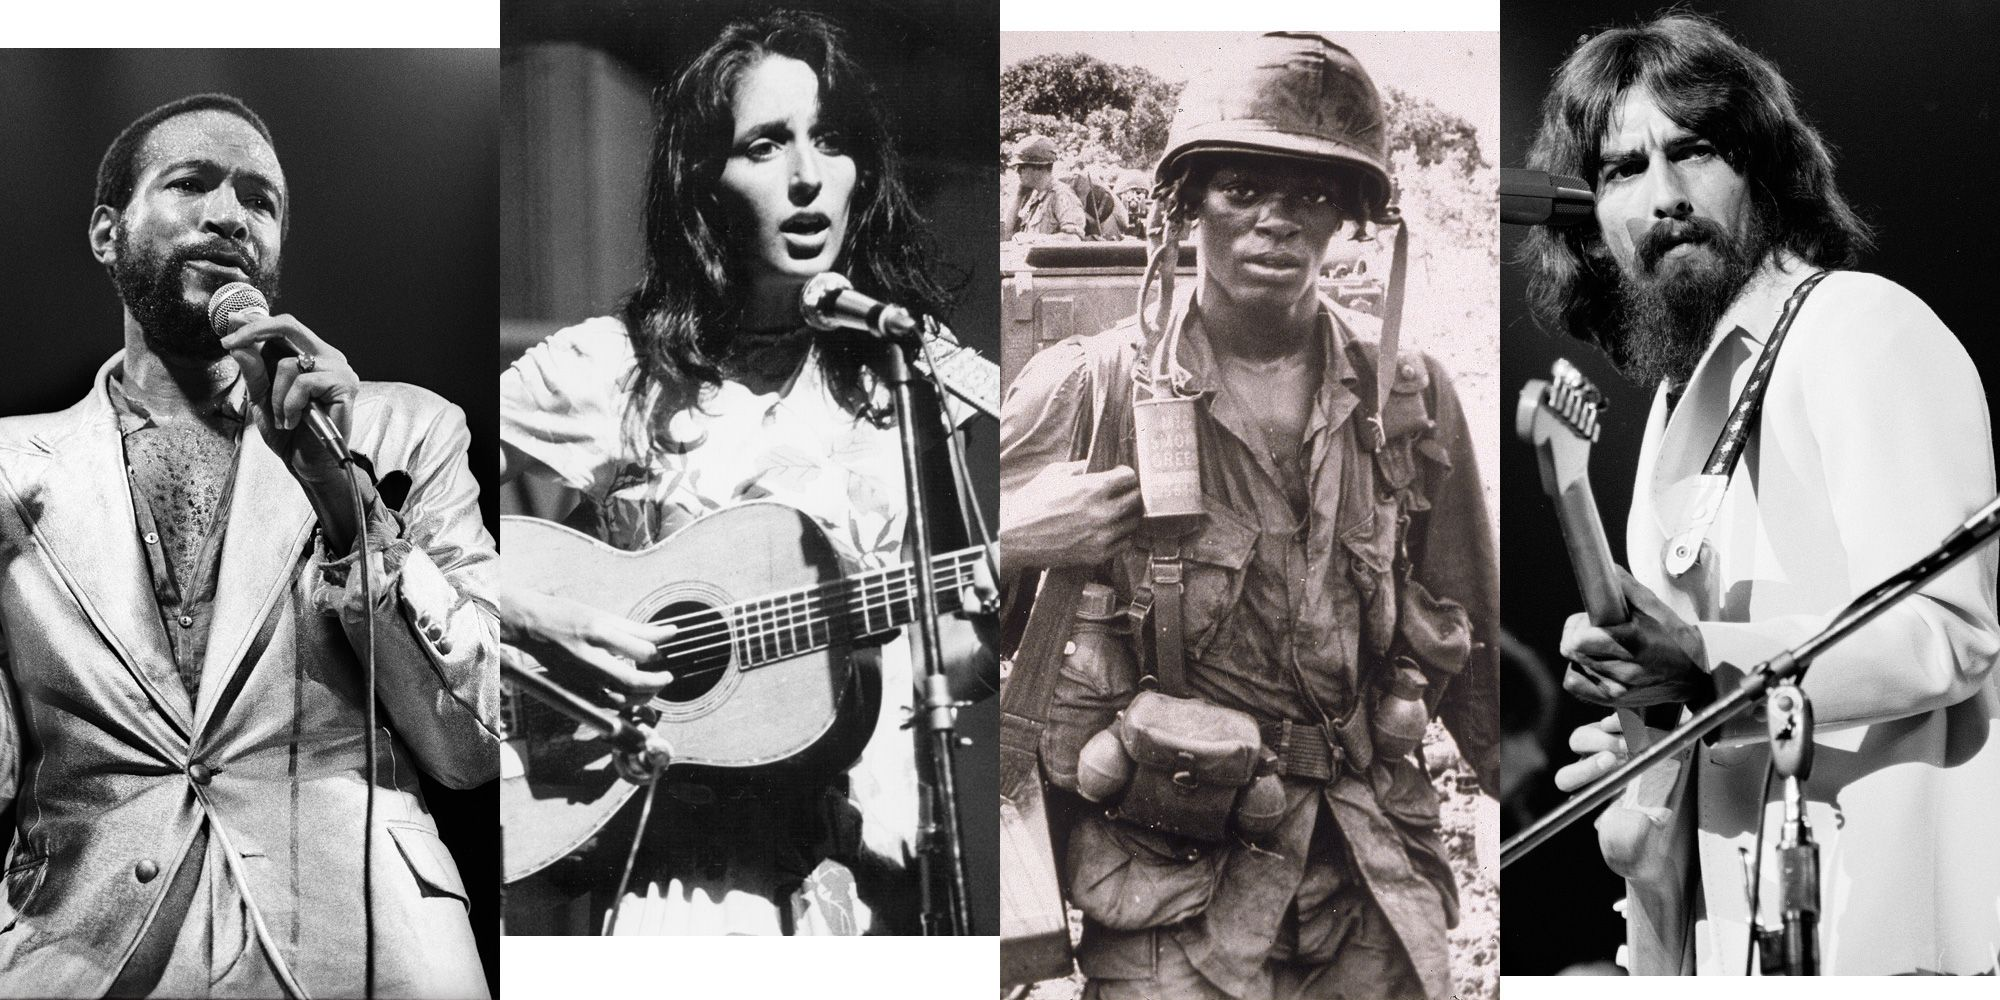 10 Best Vietnam Songs - The Best Protest Music From Vietnam